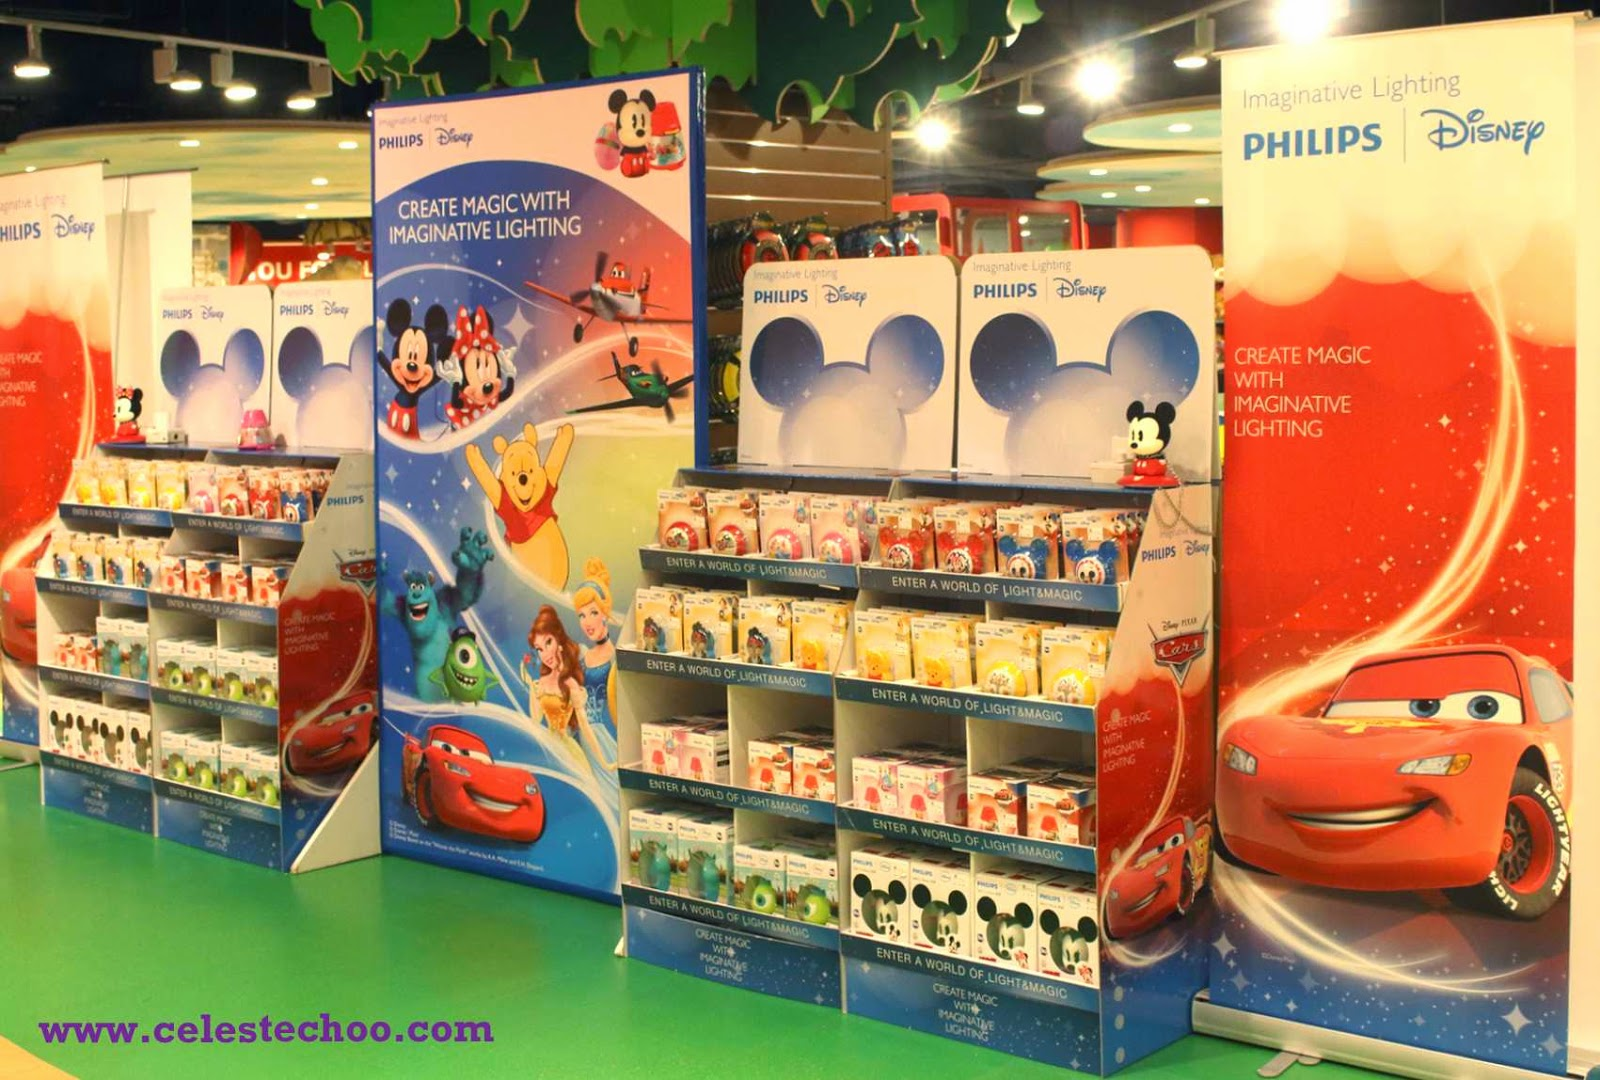 philips_disney_launch_imaginative_lighting_hamleys